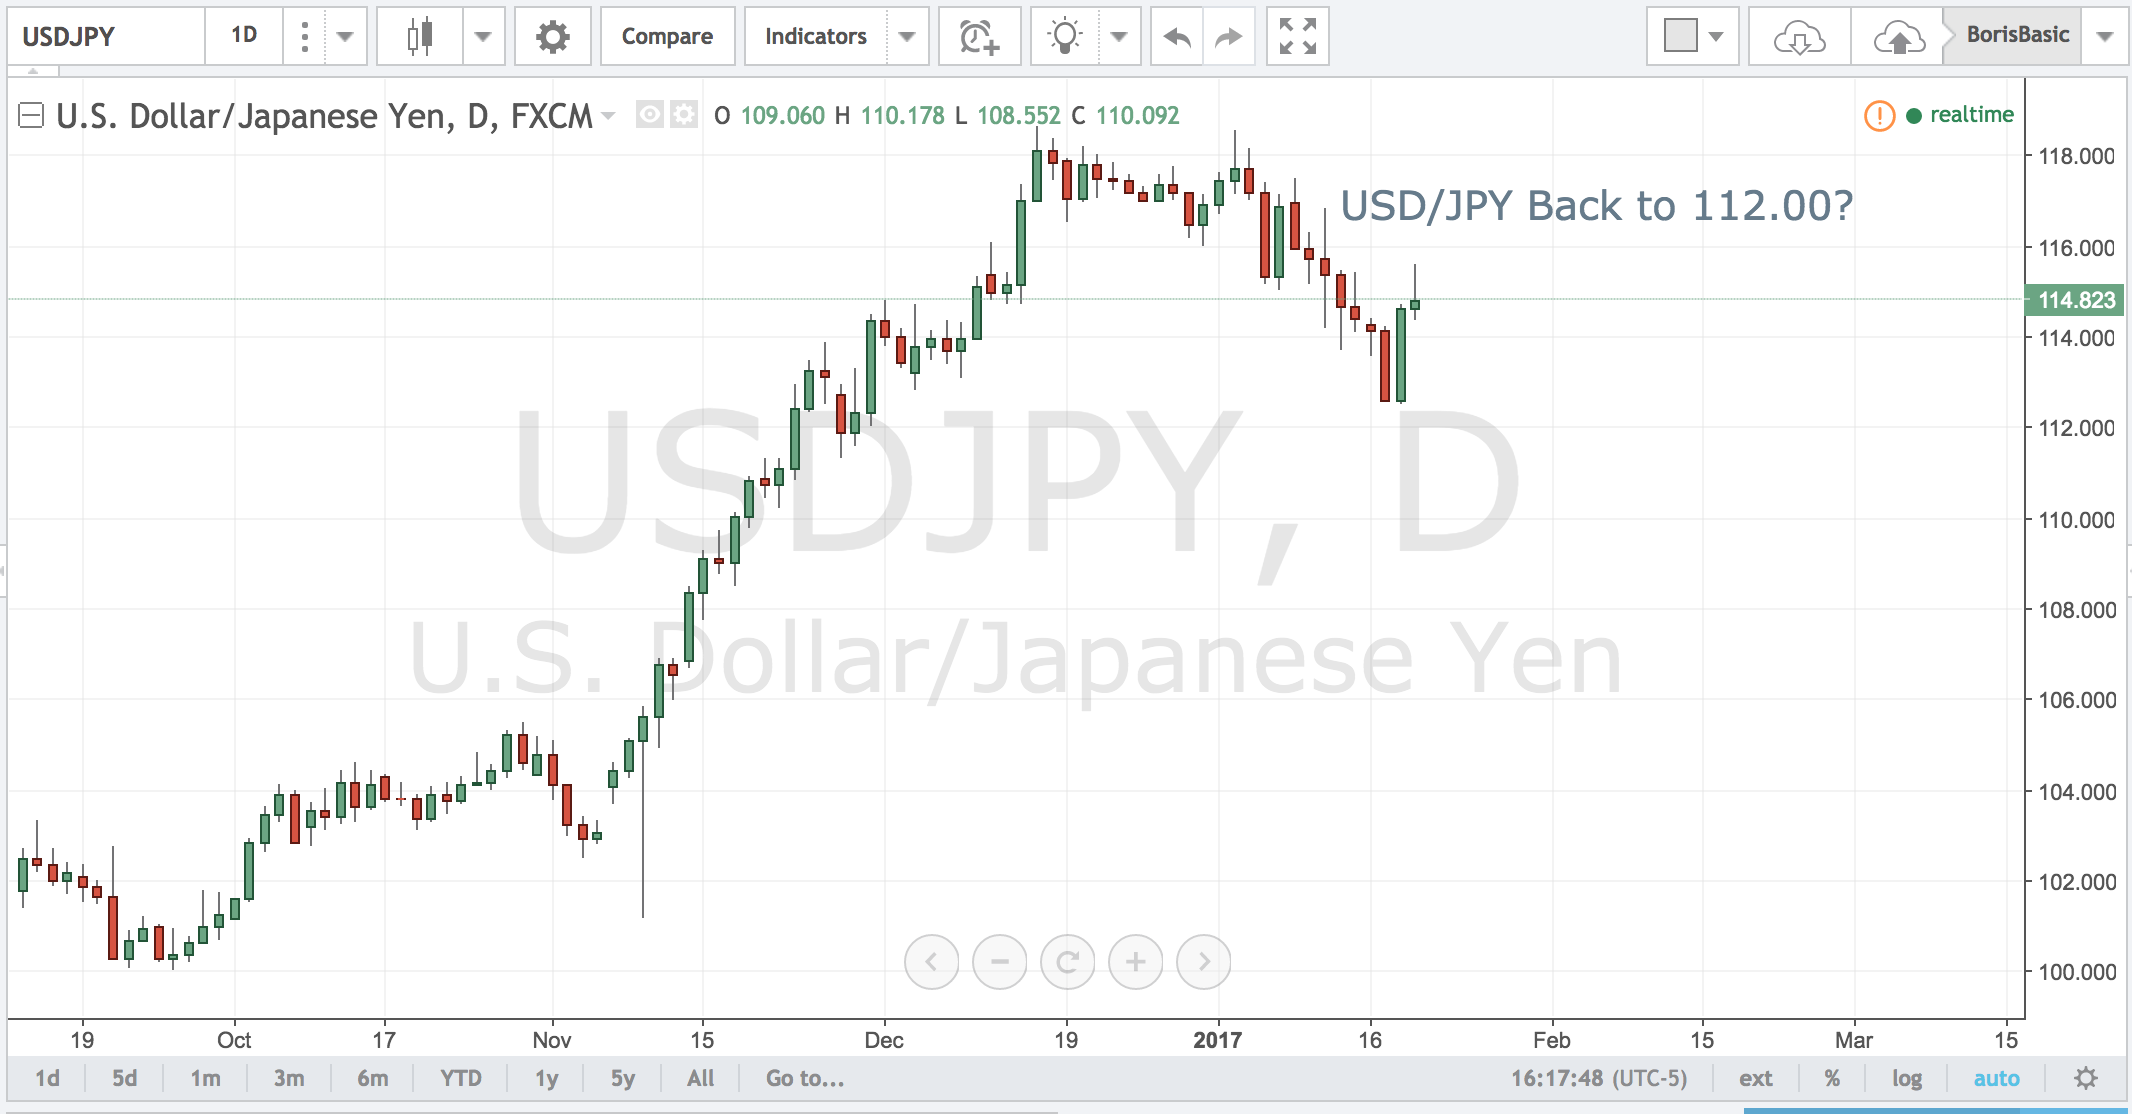 USDJPY – Back to 112.00?